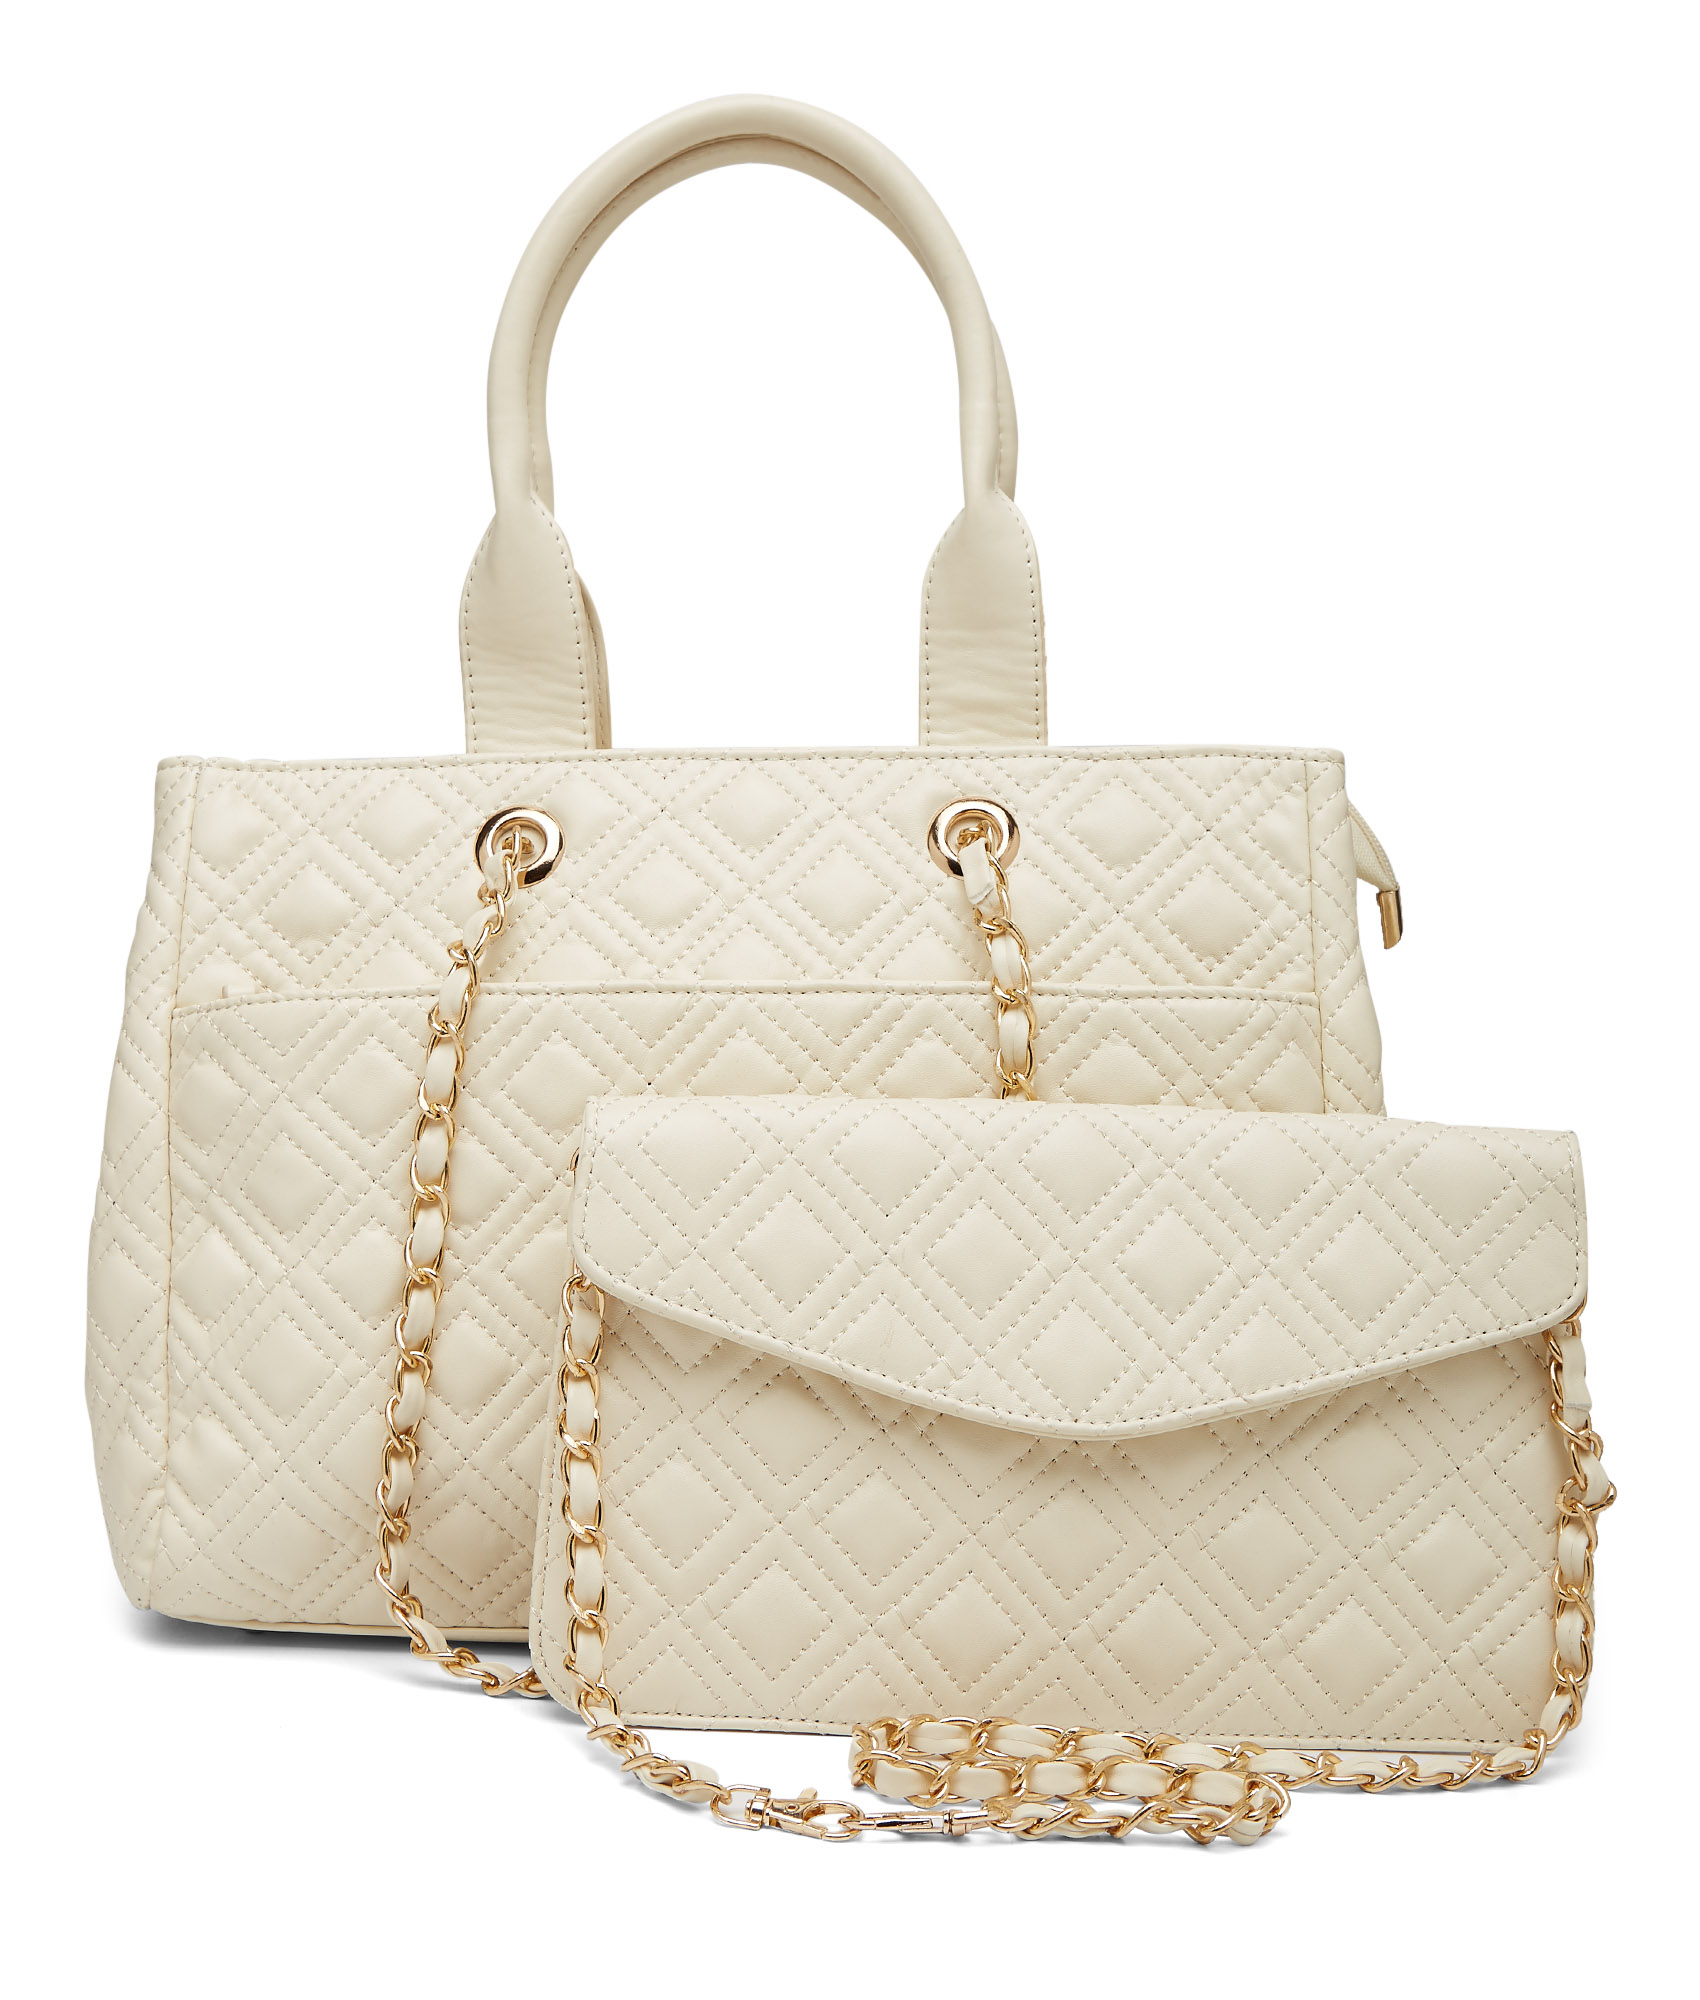 classy quilted bag for women